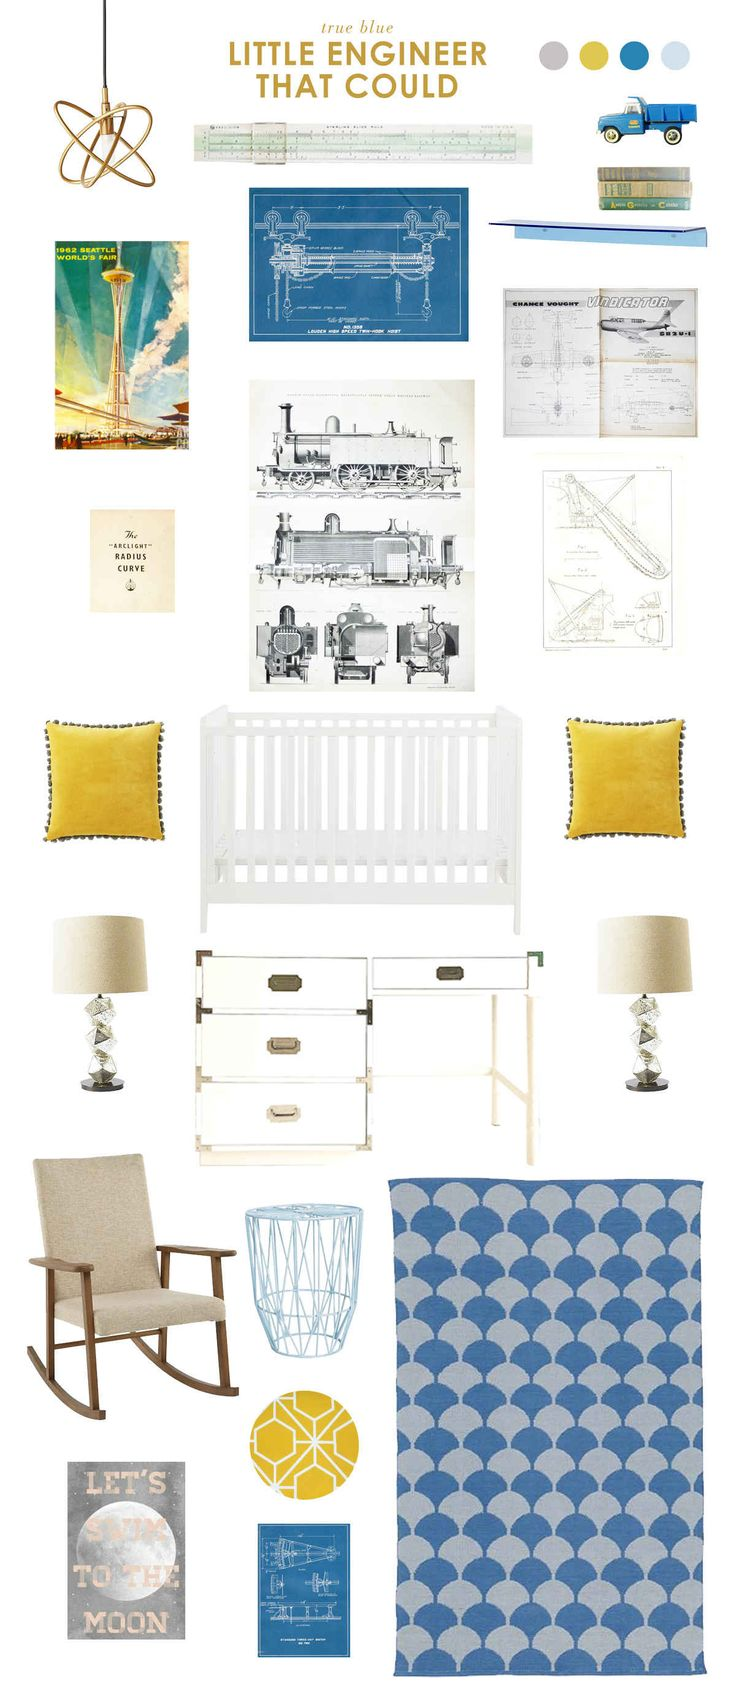 A blue and yellow baby nursery that works way beyond the baby years - the little engineer that could